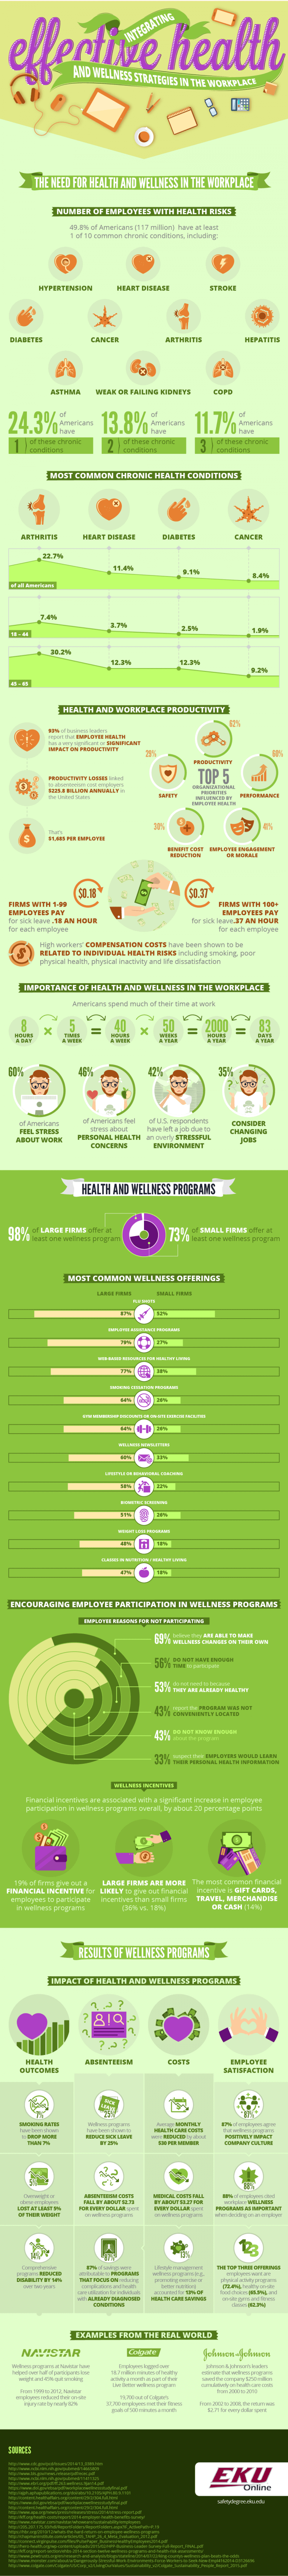 Infographic on Integrating Effective Health and Wellness Strategies in the Workplace